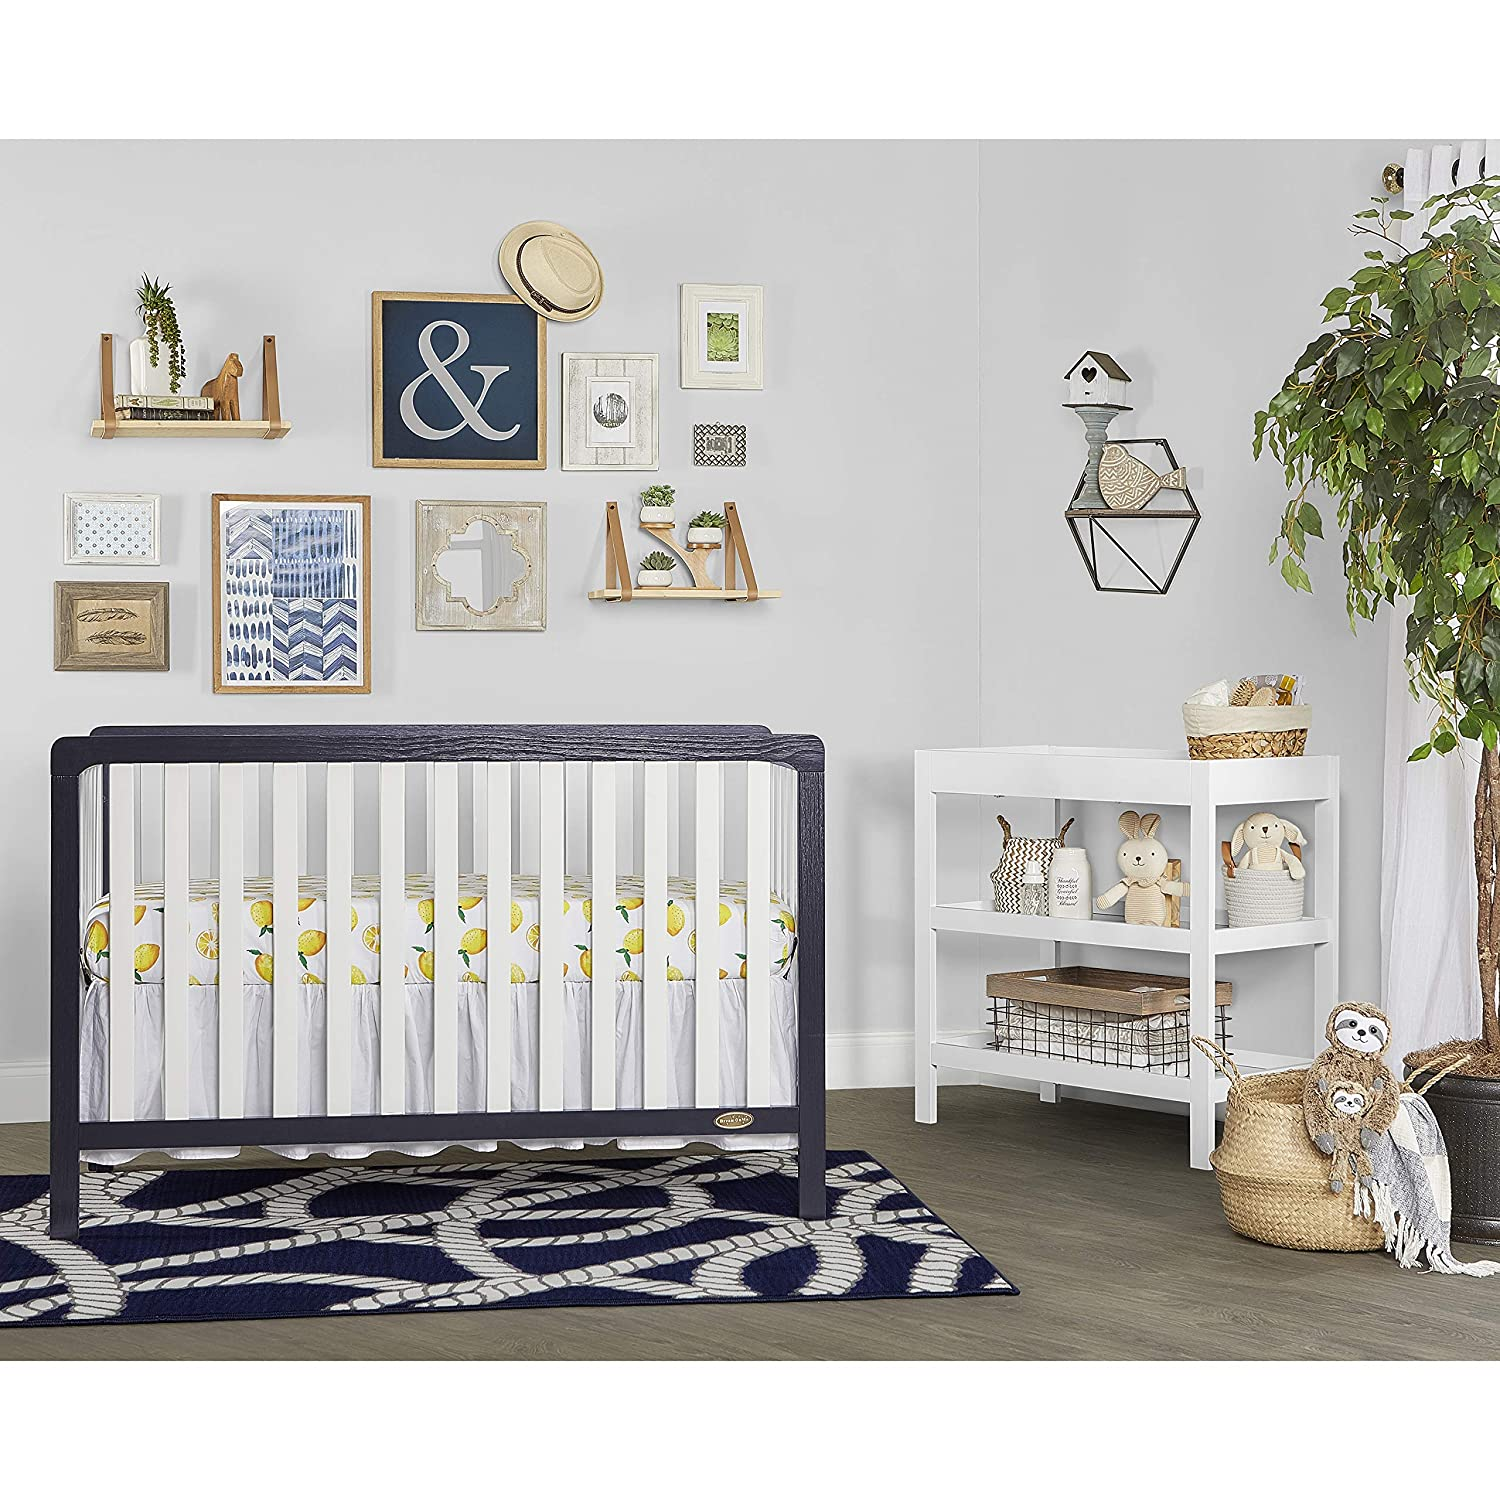 Dream On Me Ridgefield II 5-in-1 Convertible Crib, White with Wire Brushed Navy